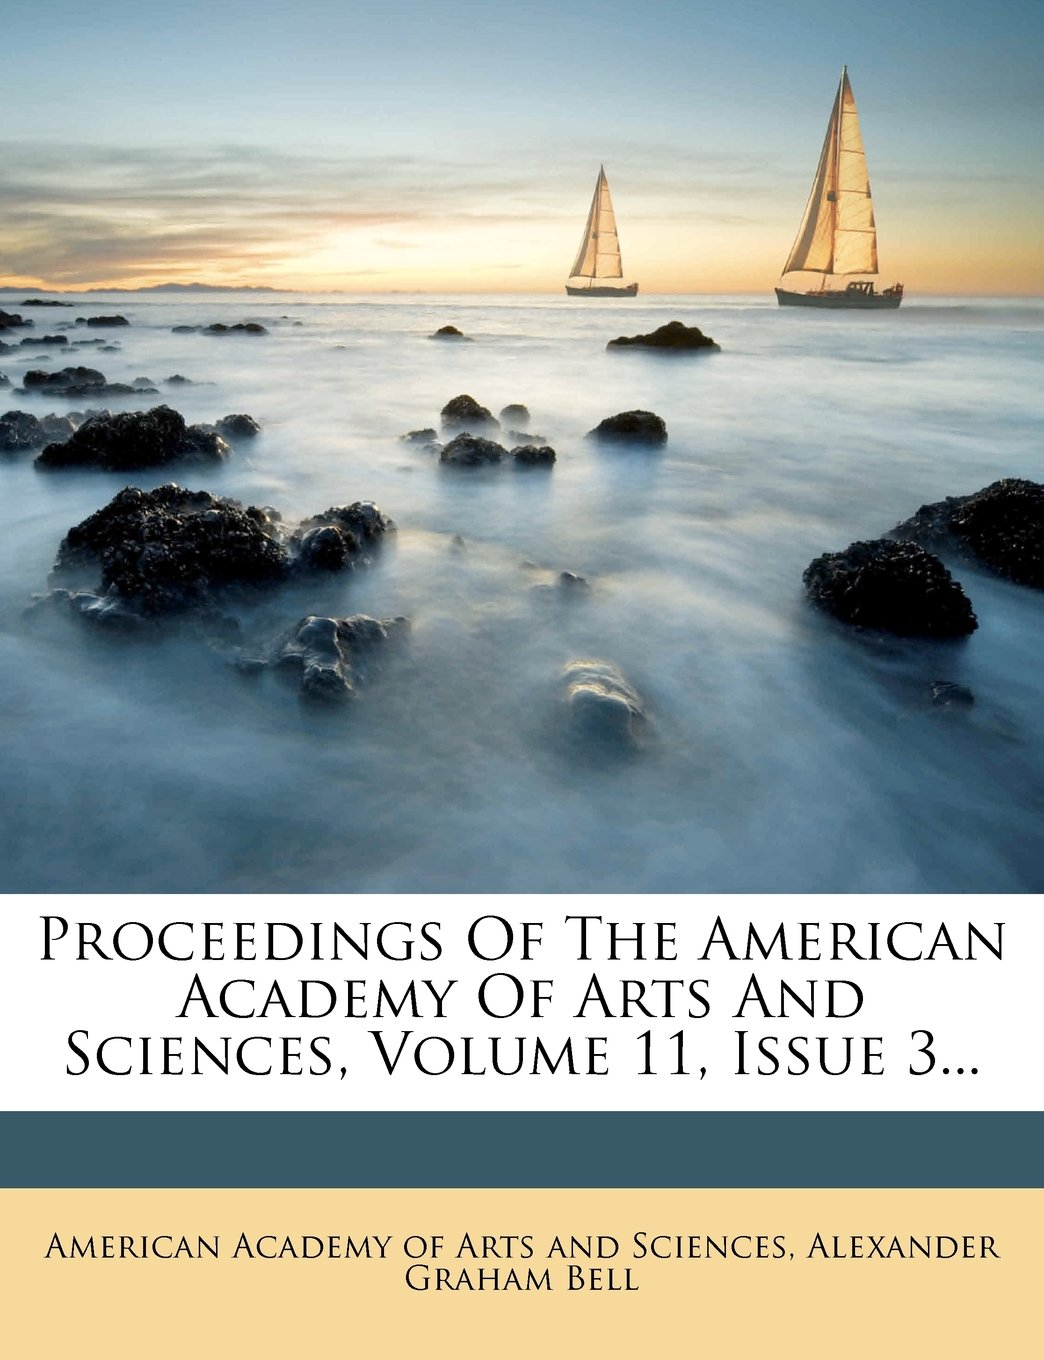 Proceedings Of The American Academy Of Arts And Sciences, Volume 11, Issue 3... PDF